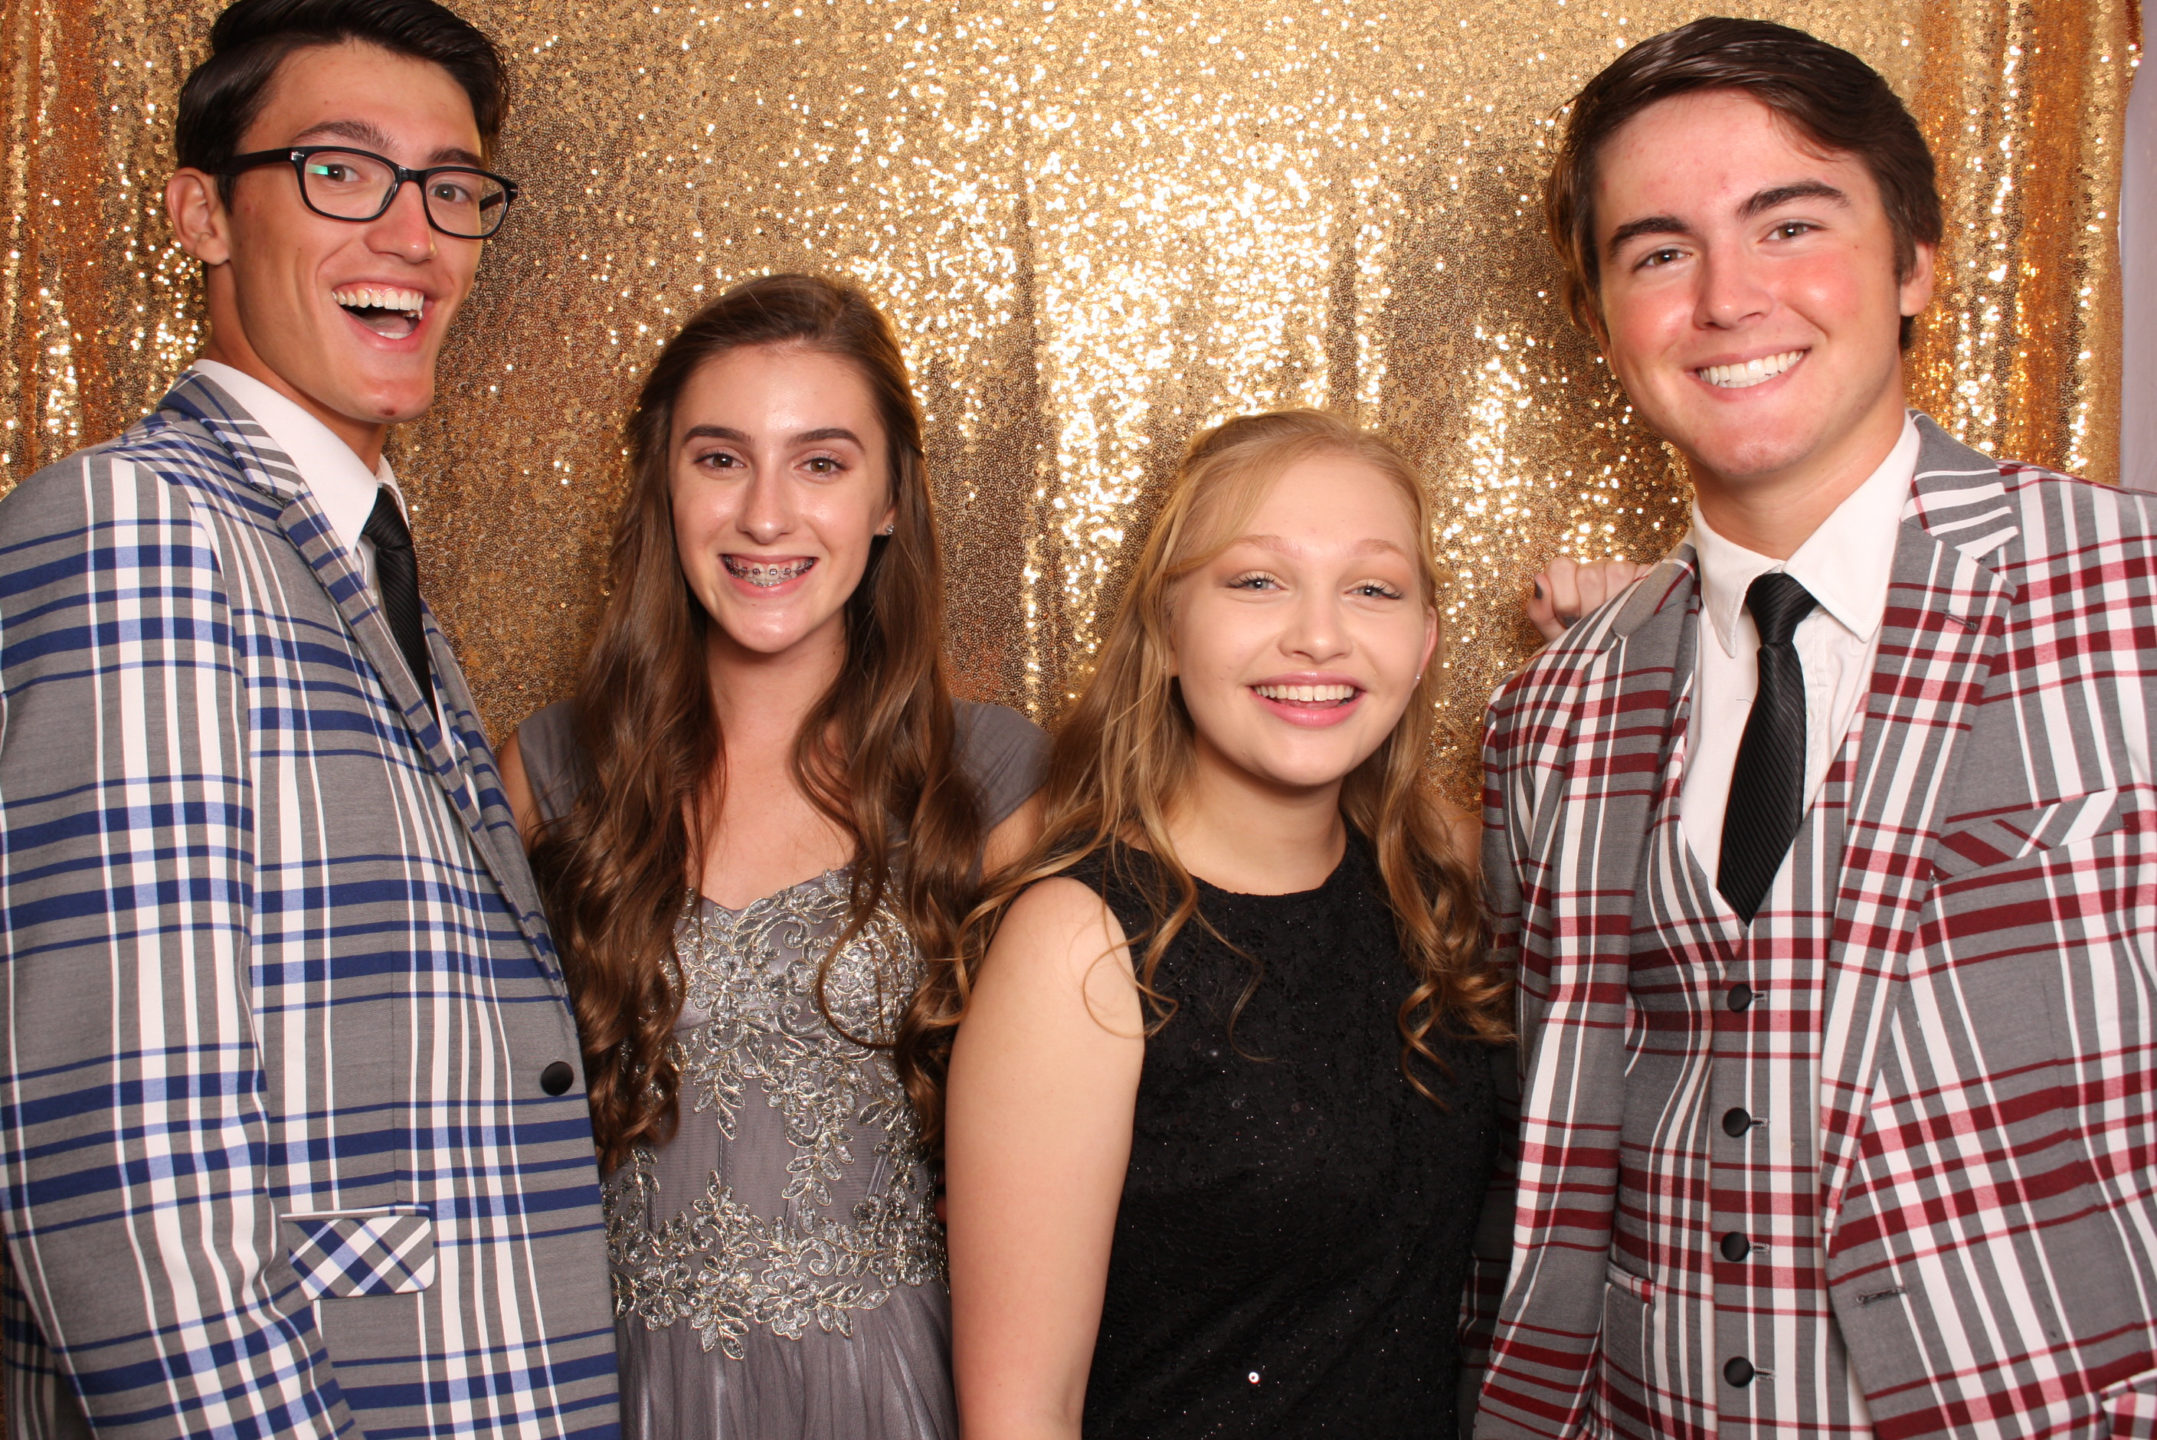 Gold Glitter Backdrop Prom Photo in Ultra Booth